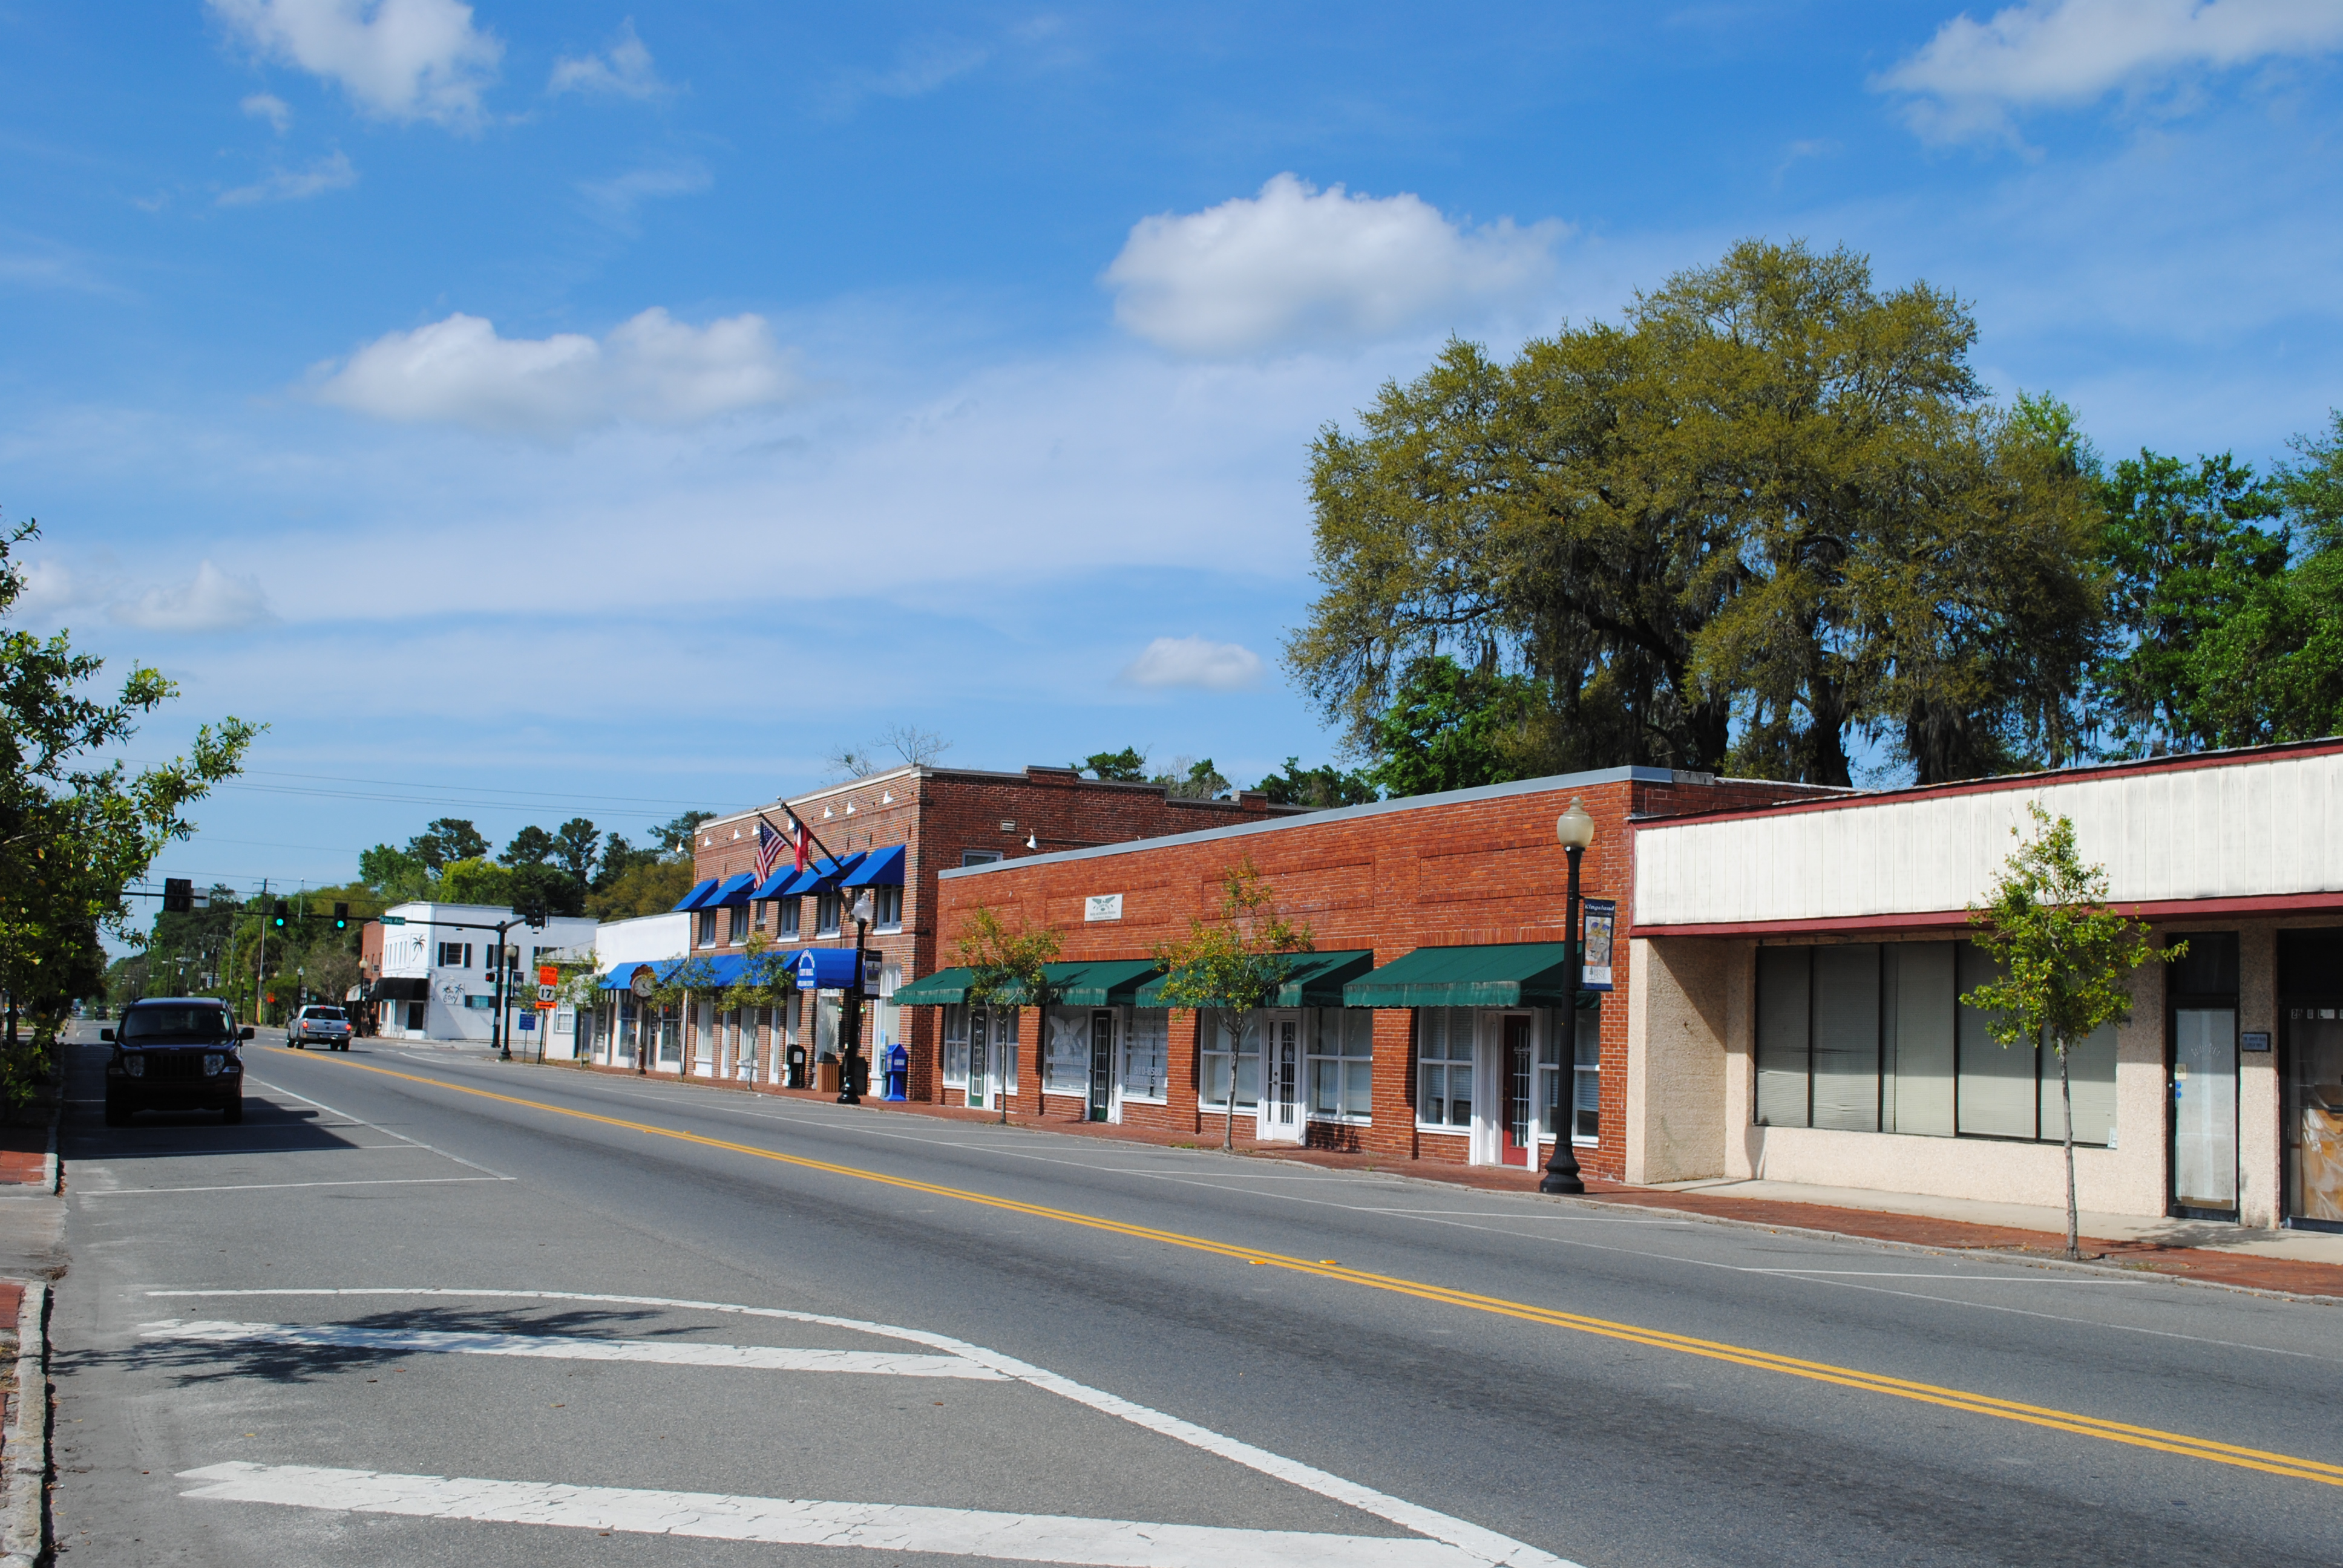 DowntownKingslandGA